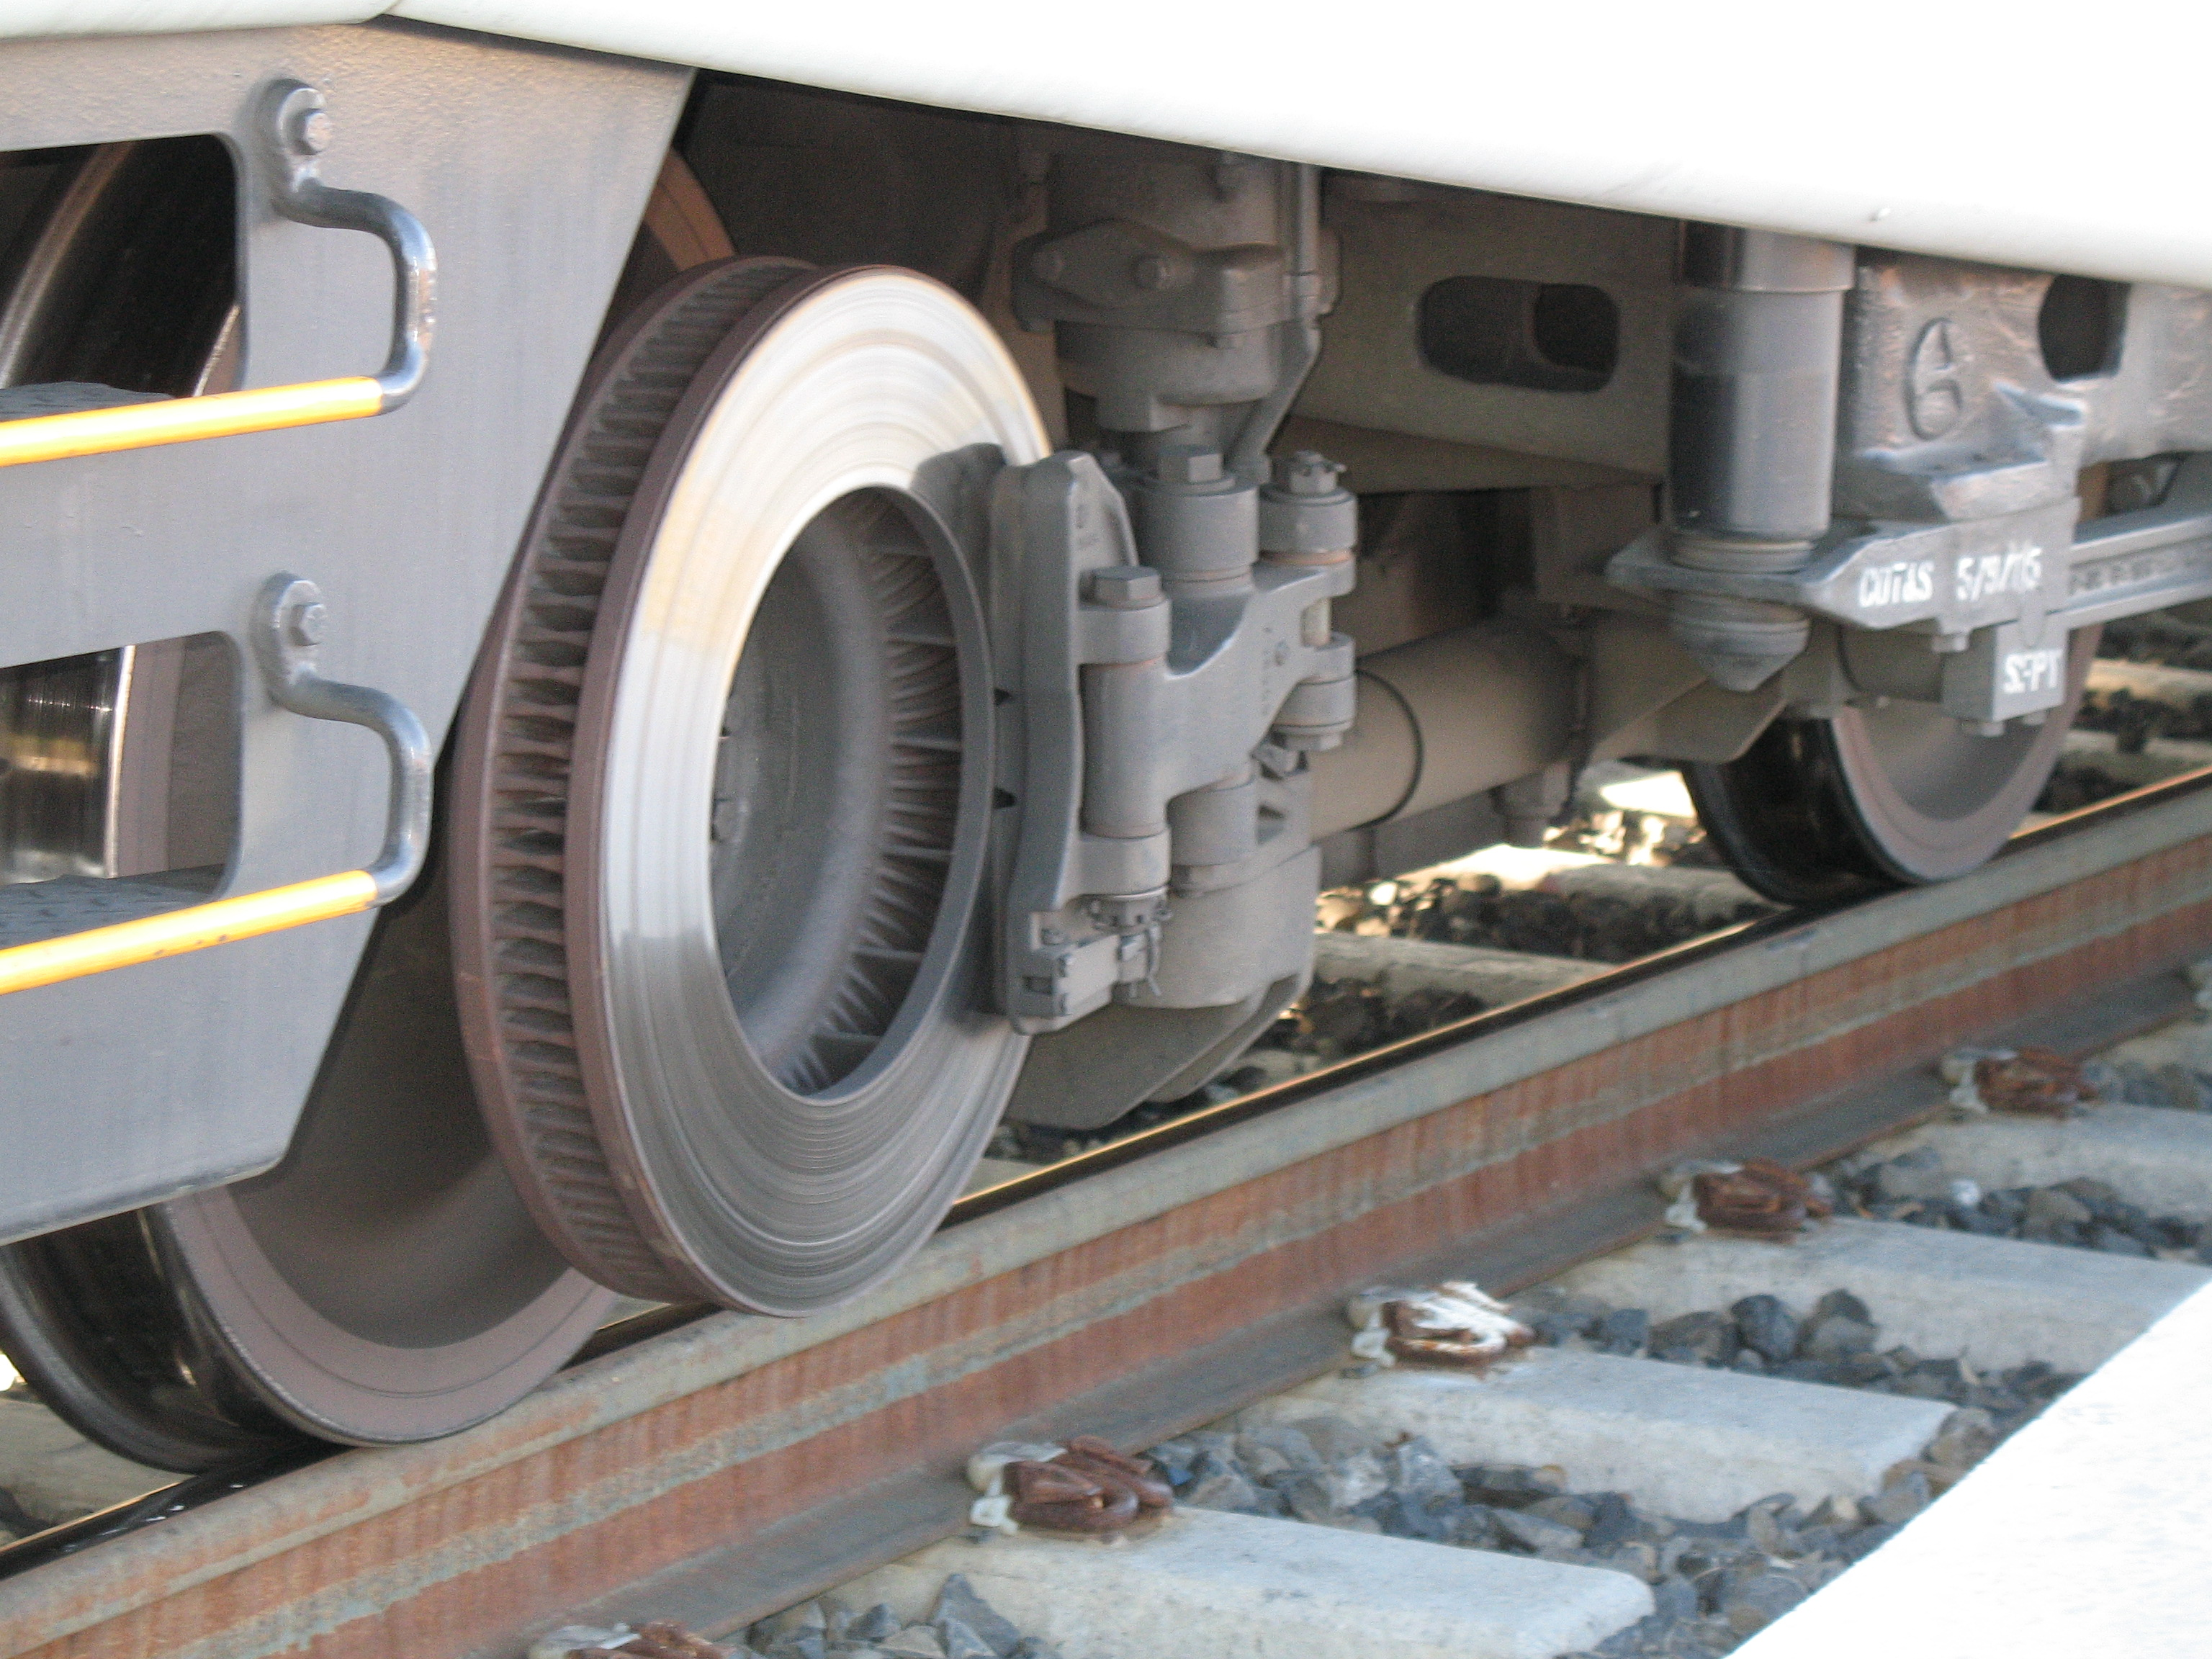 This is what catastrophic air brake failure looks like on